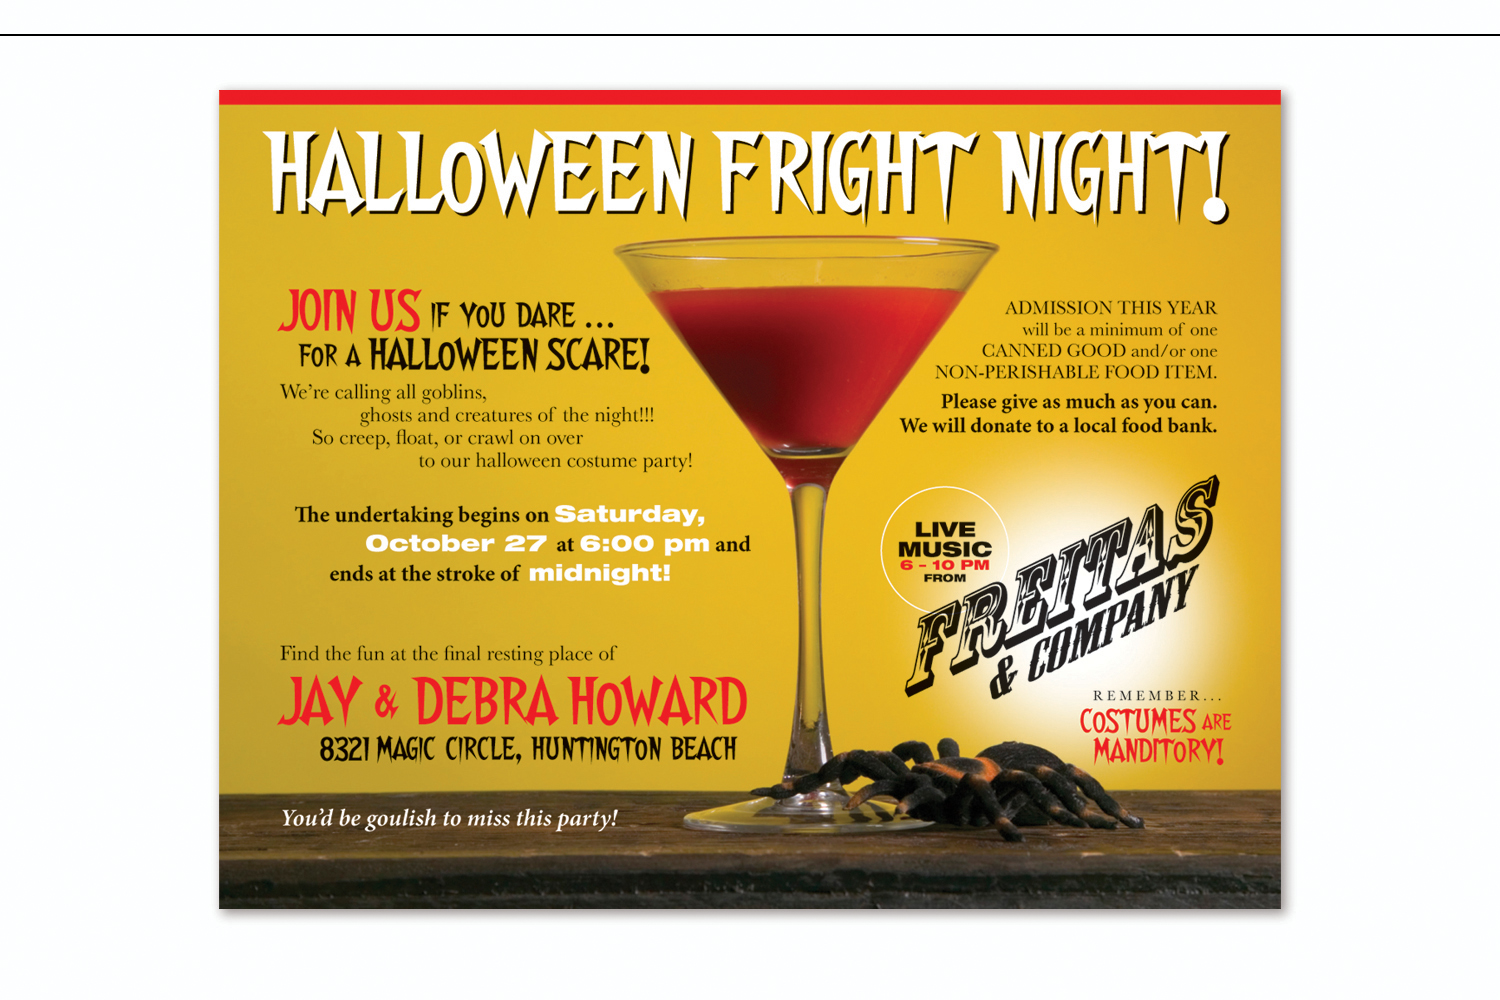 Halloween Event   to benefit the Orange County Food Bank